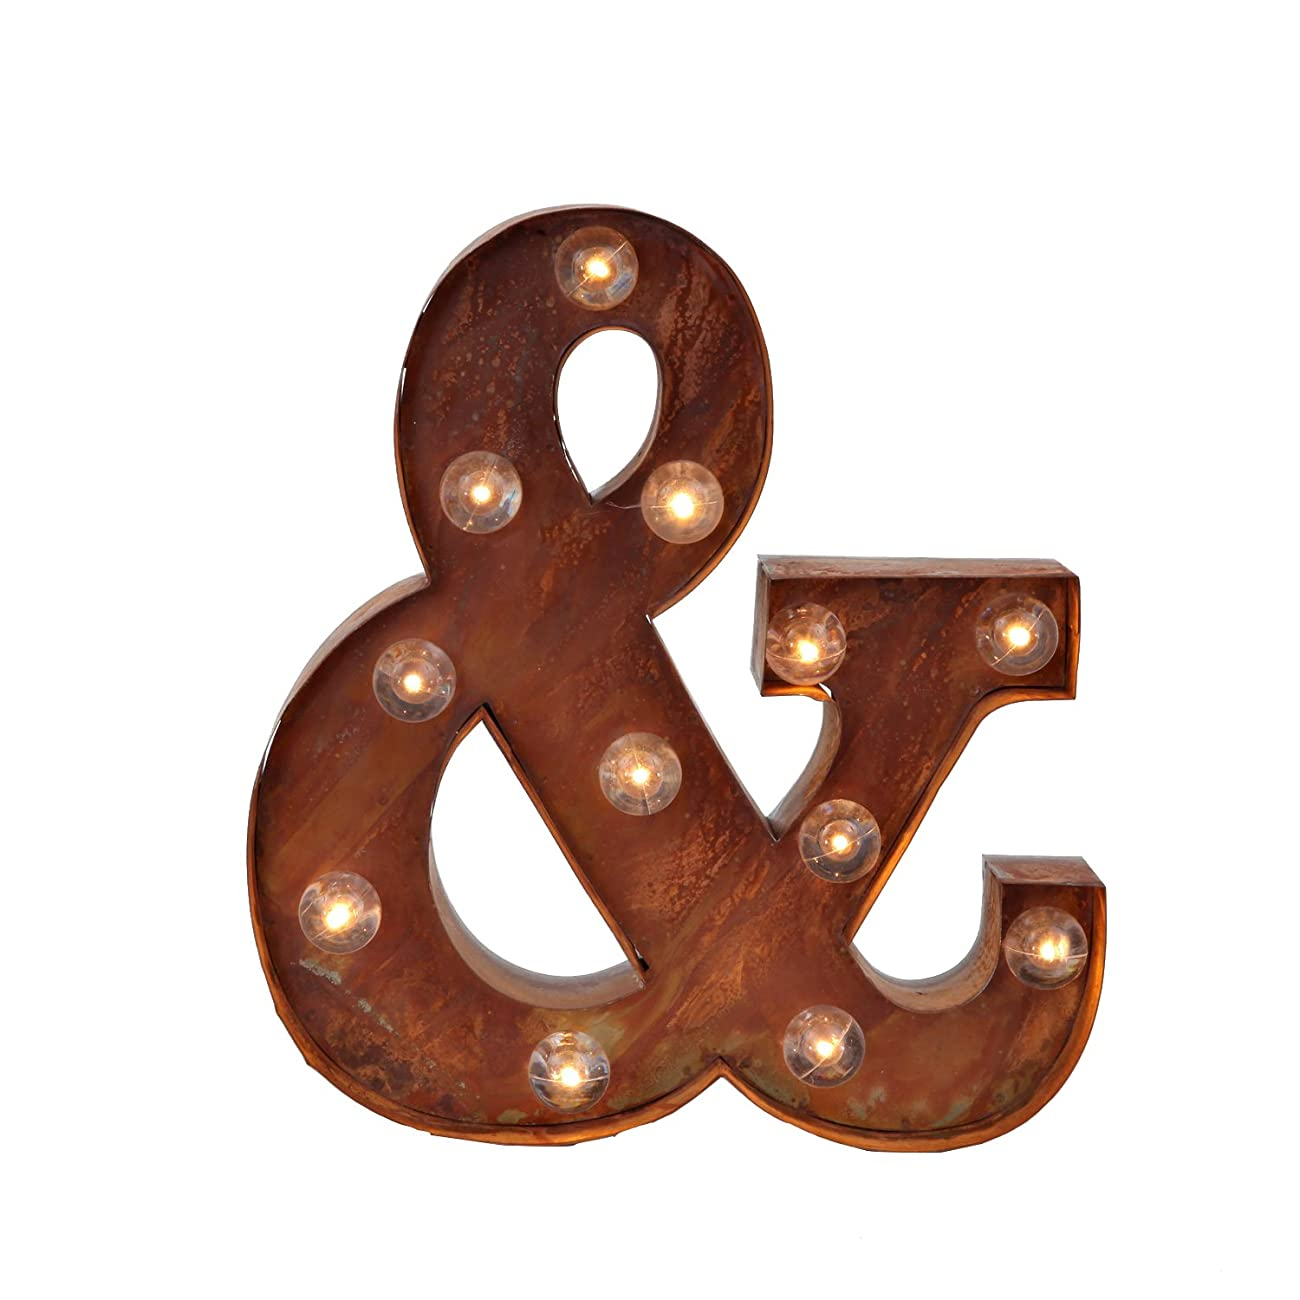 Vintage Lighted Ampersand Symbol Battery Marquee Light with 12 Warm White LEDs, Rustic Metal, Timer Option Available 0